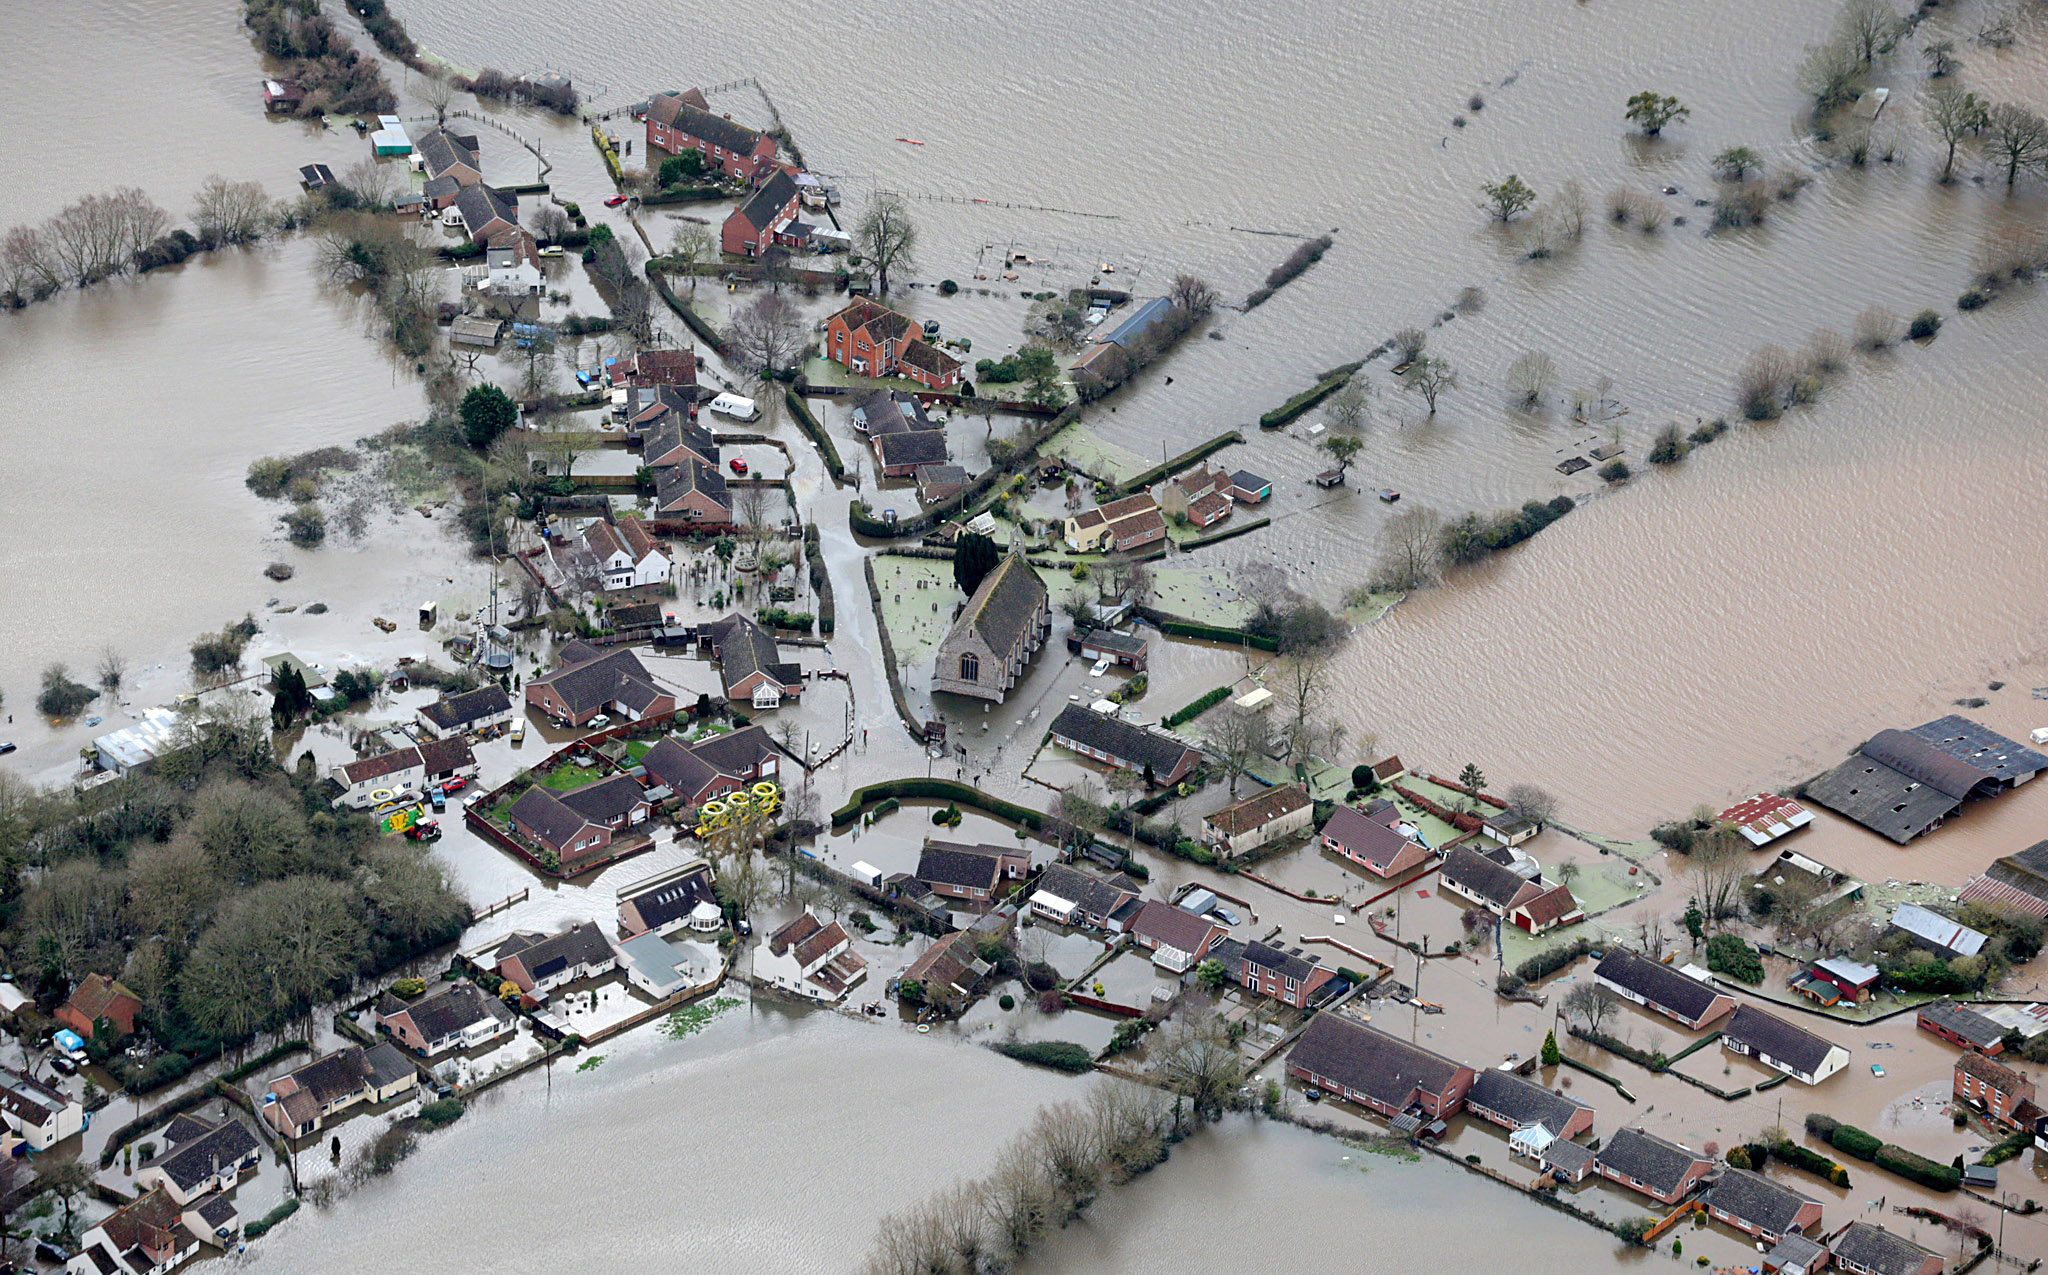 ***BESTPIX***  Aerial Views Show The Extent Of The Flooding On The Somerset Levels...BRIDGWATER, UNITED KINGDOM - FEBRUARY 10:  Water surrounds flooded properties in the village of Moorland on the Somerset Levels on February 10, 2014 in Somerset, England. Thousands of acres of the Somerset Levels have been under water for weeks, yet flood levels are still rising and worryingly, more rain is forecast for later this week.  (Photo by Matt Cardy/Getty Images) ***BESTPIX***